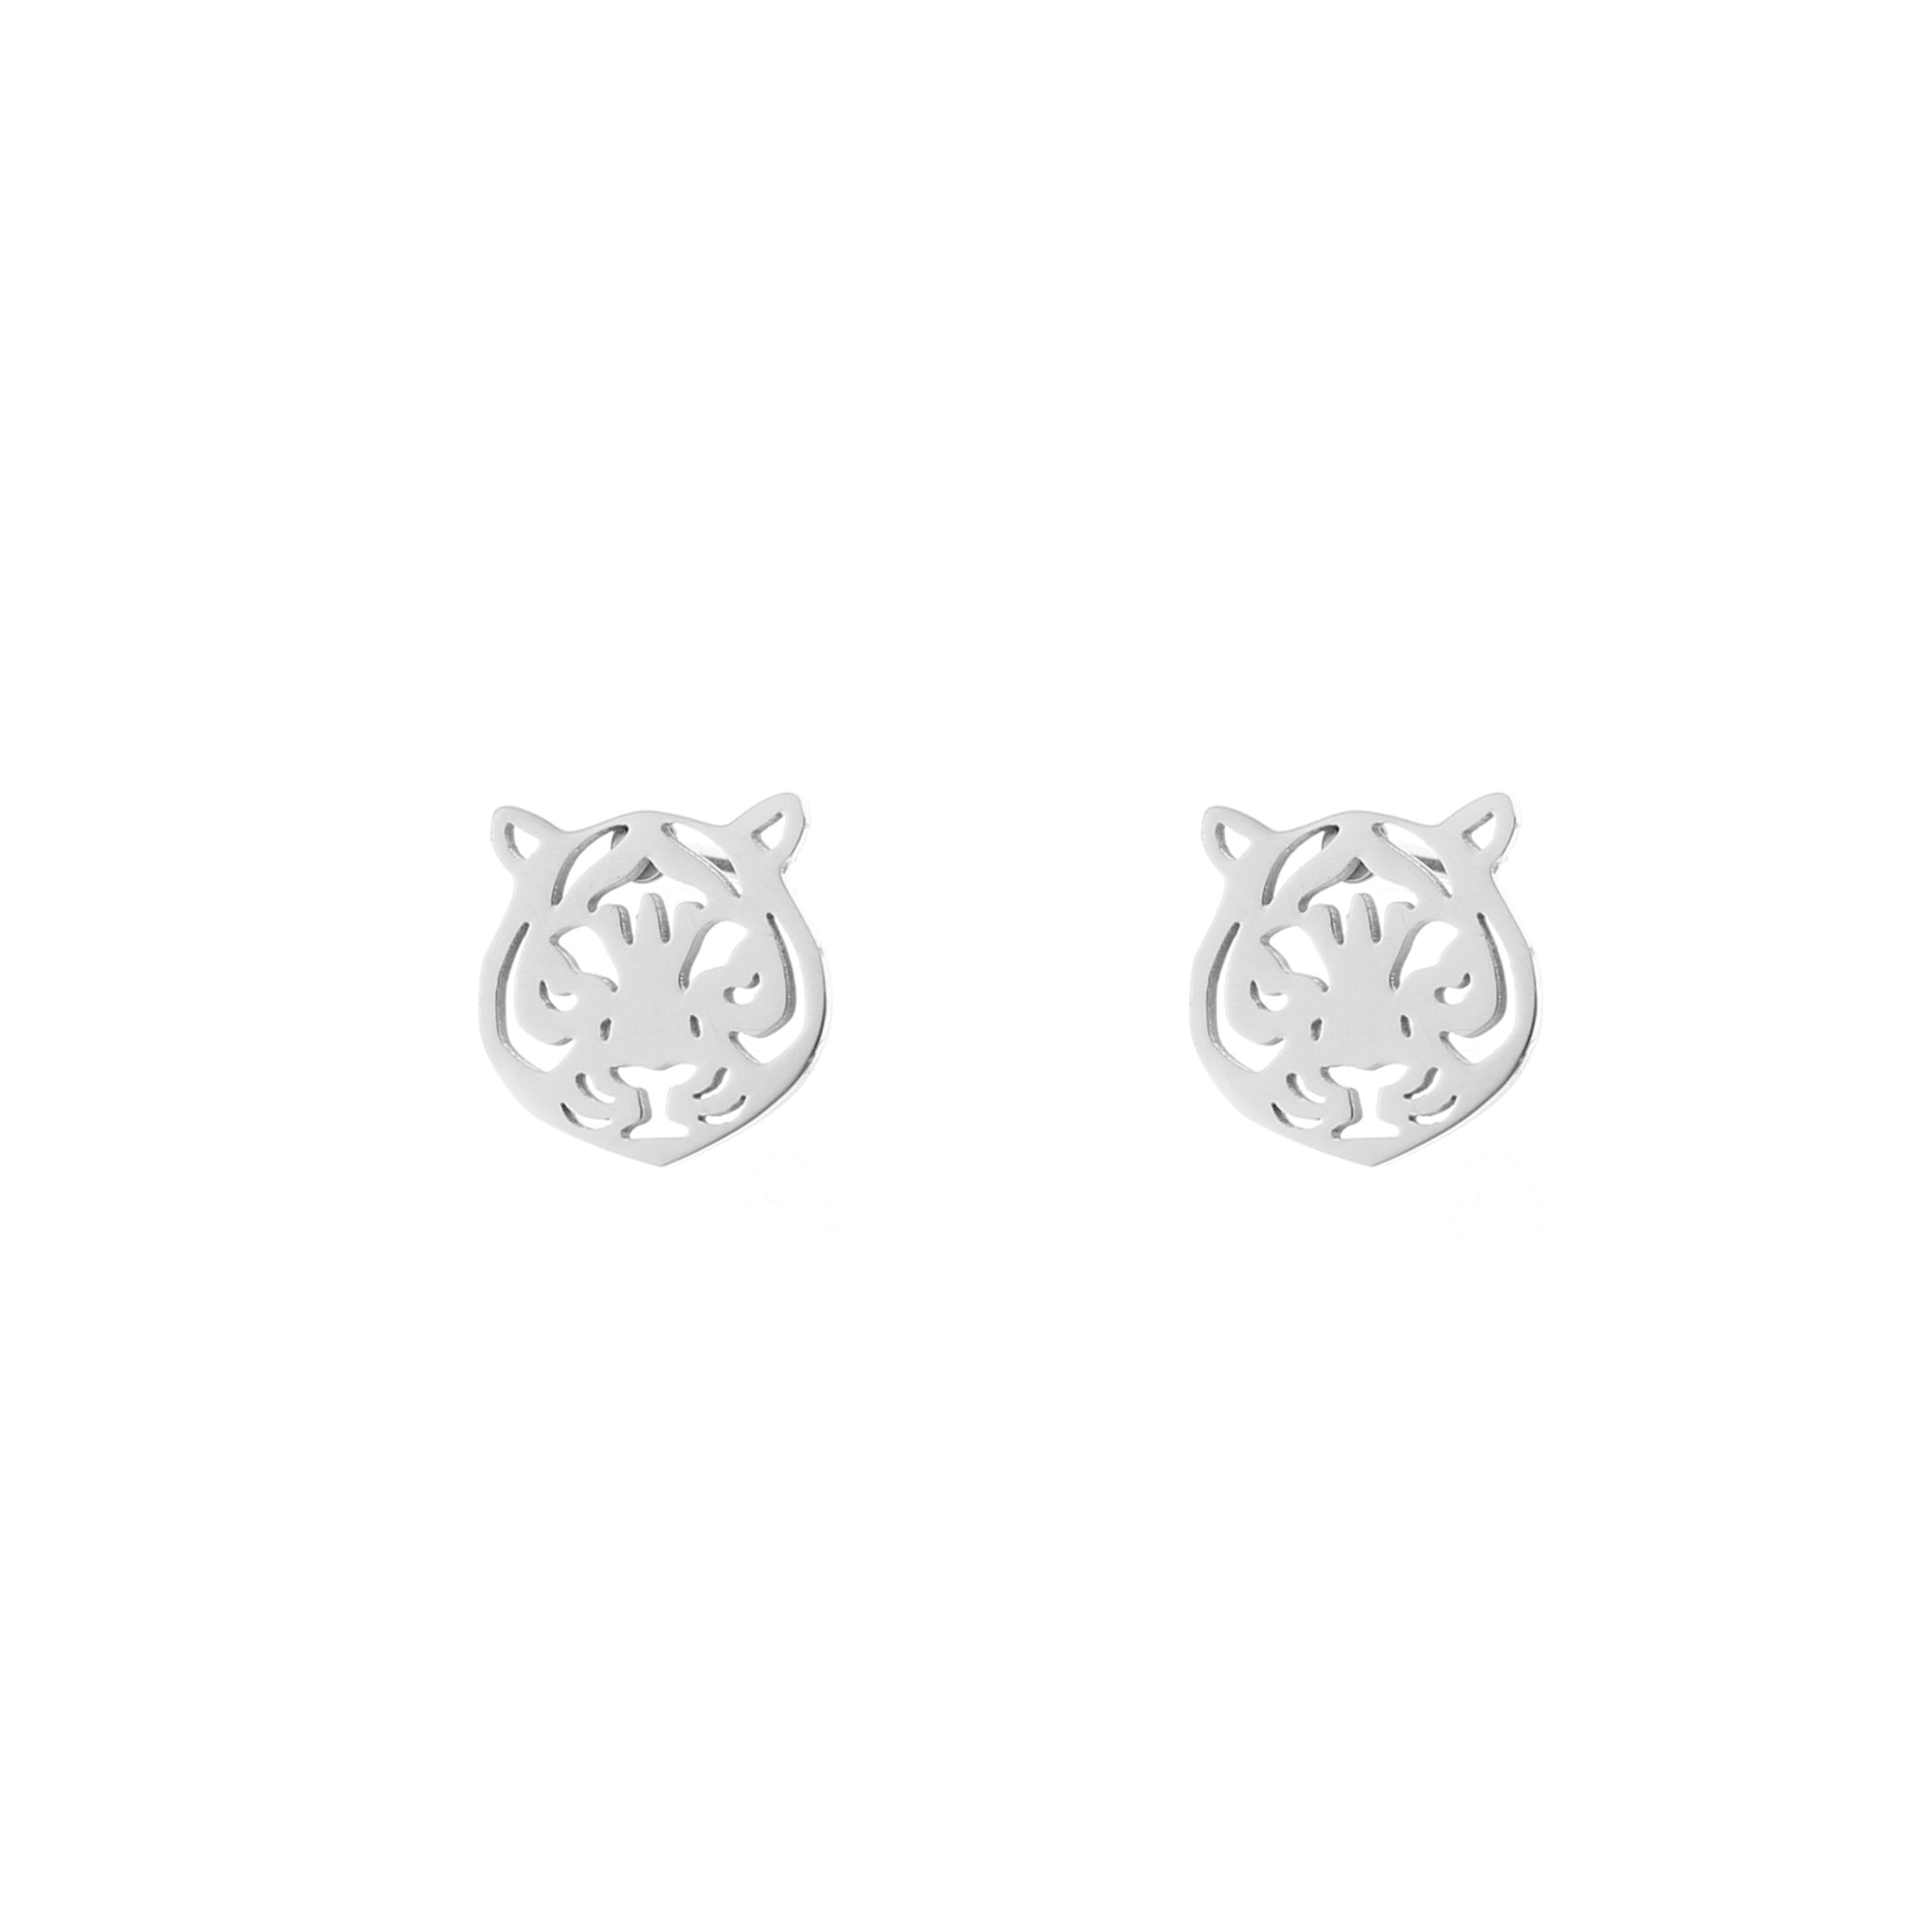 Tiger stud earrings silver